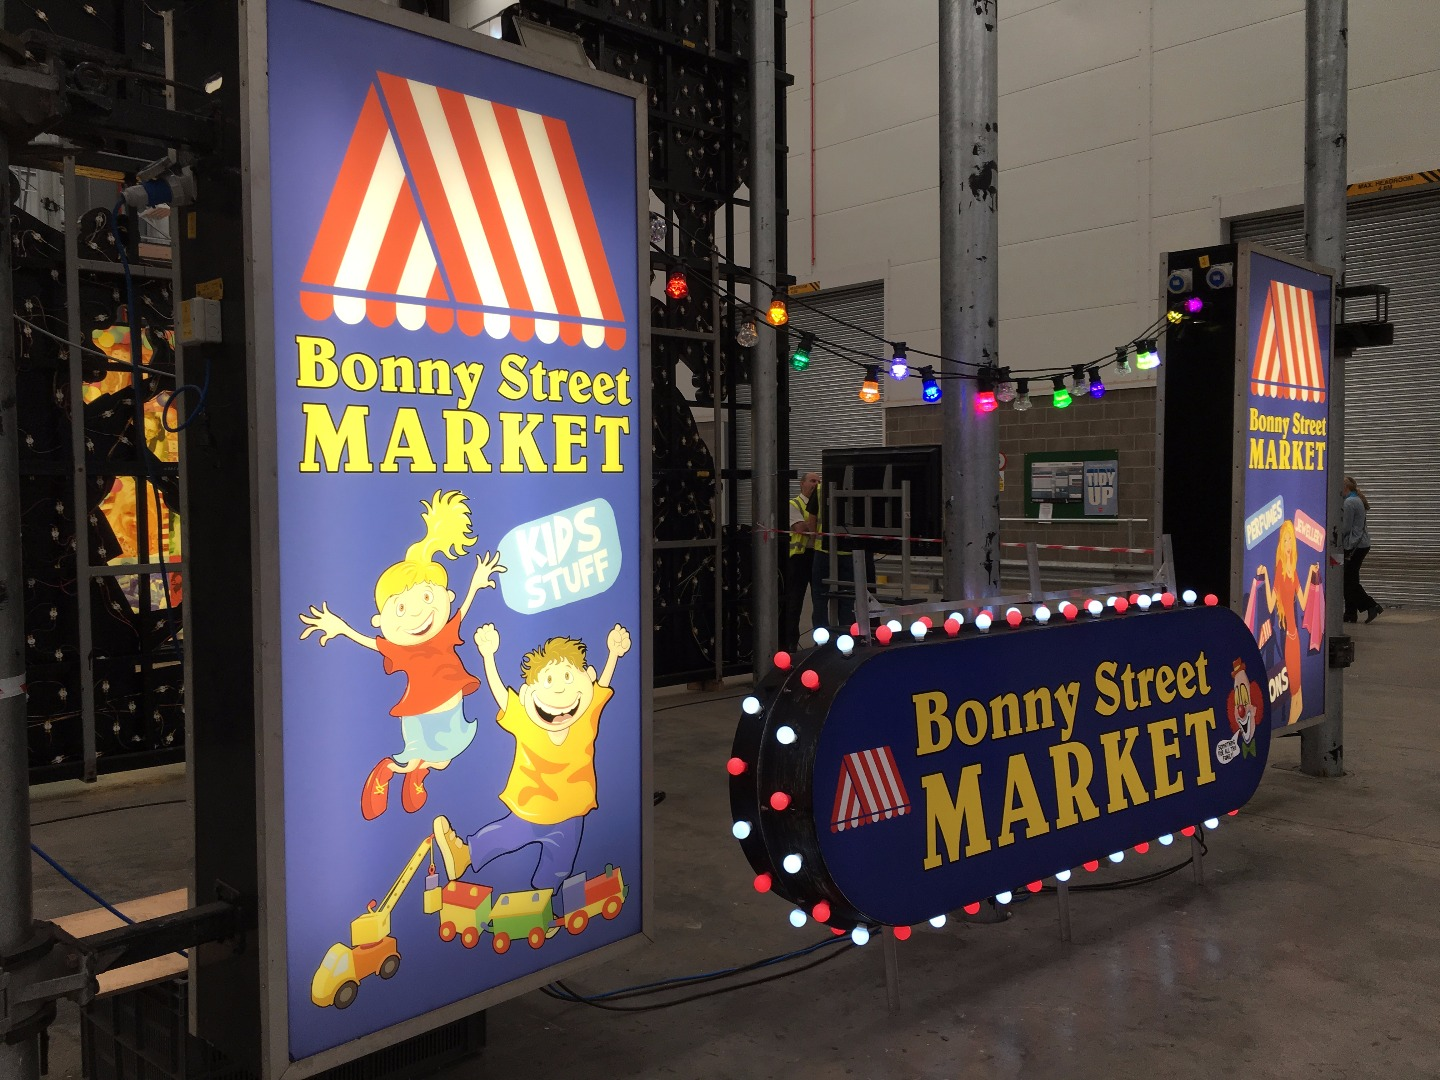 Bonny Street Market, new Illuminations for 2017